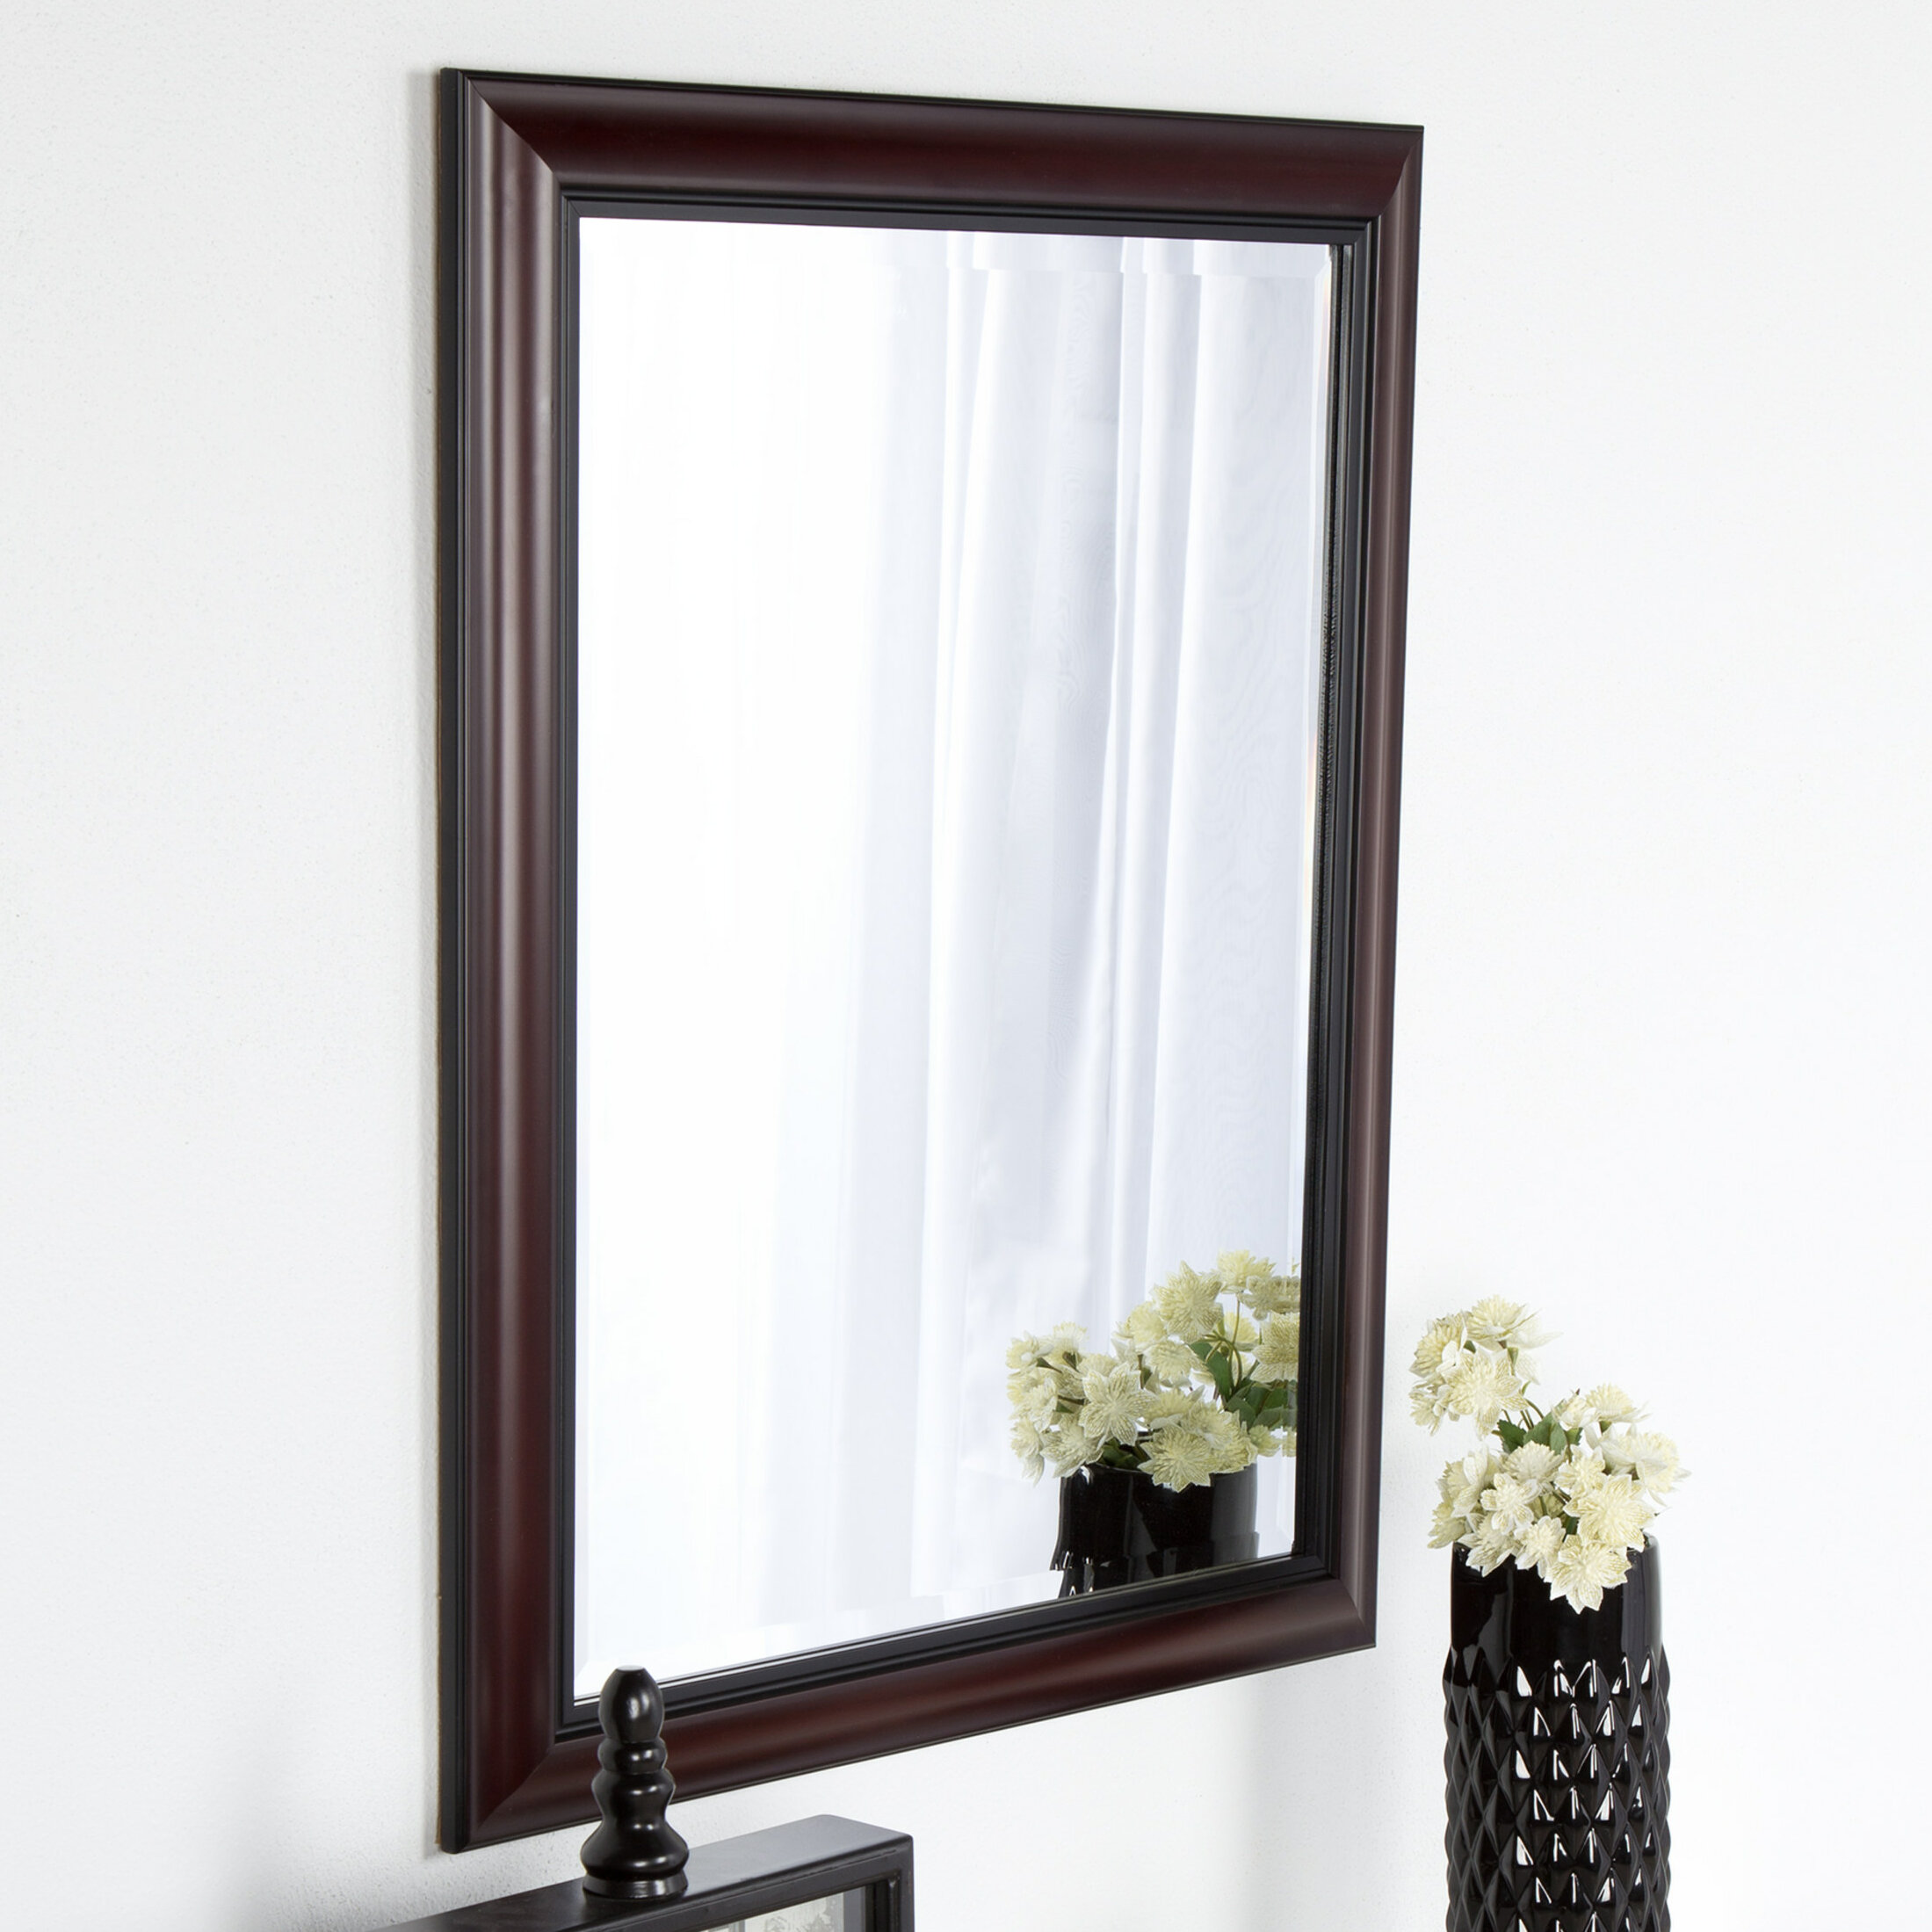 Dsov Dalat Cherry Framed Vanity Beveled Wall Mirror Reviews Wayfair